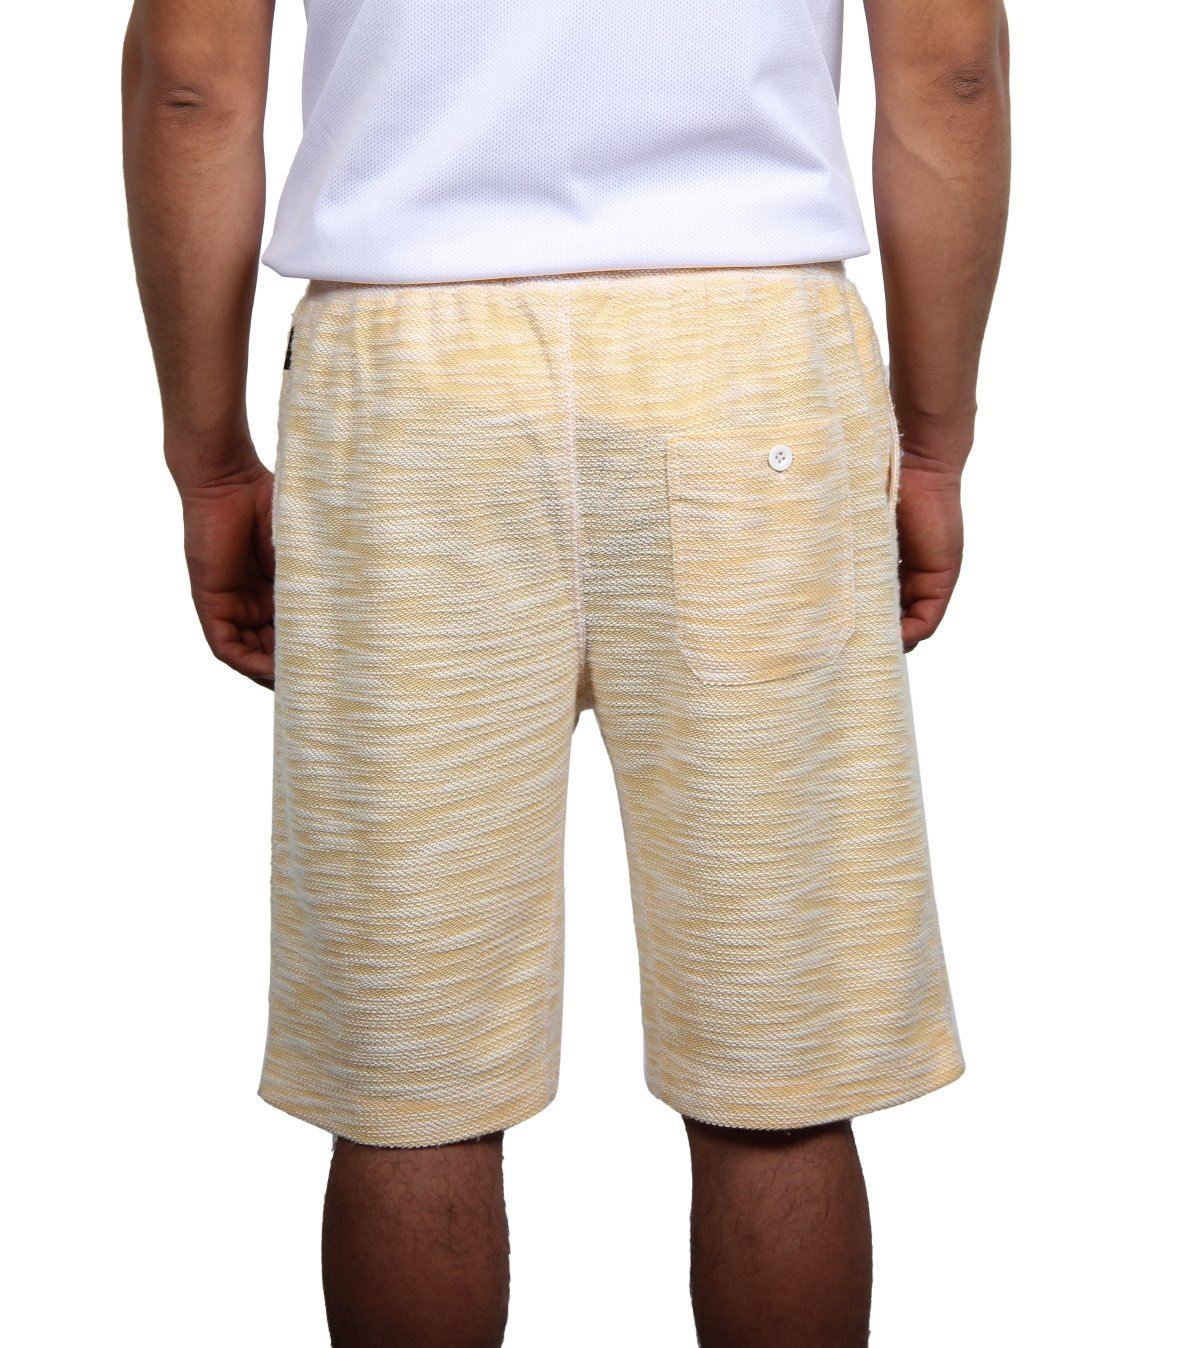 ROCKVIEW STREET SHORTS